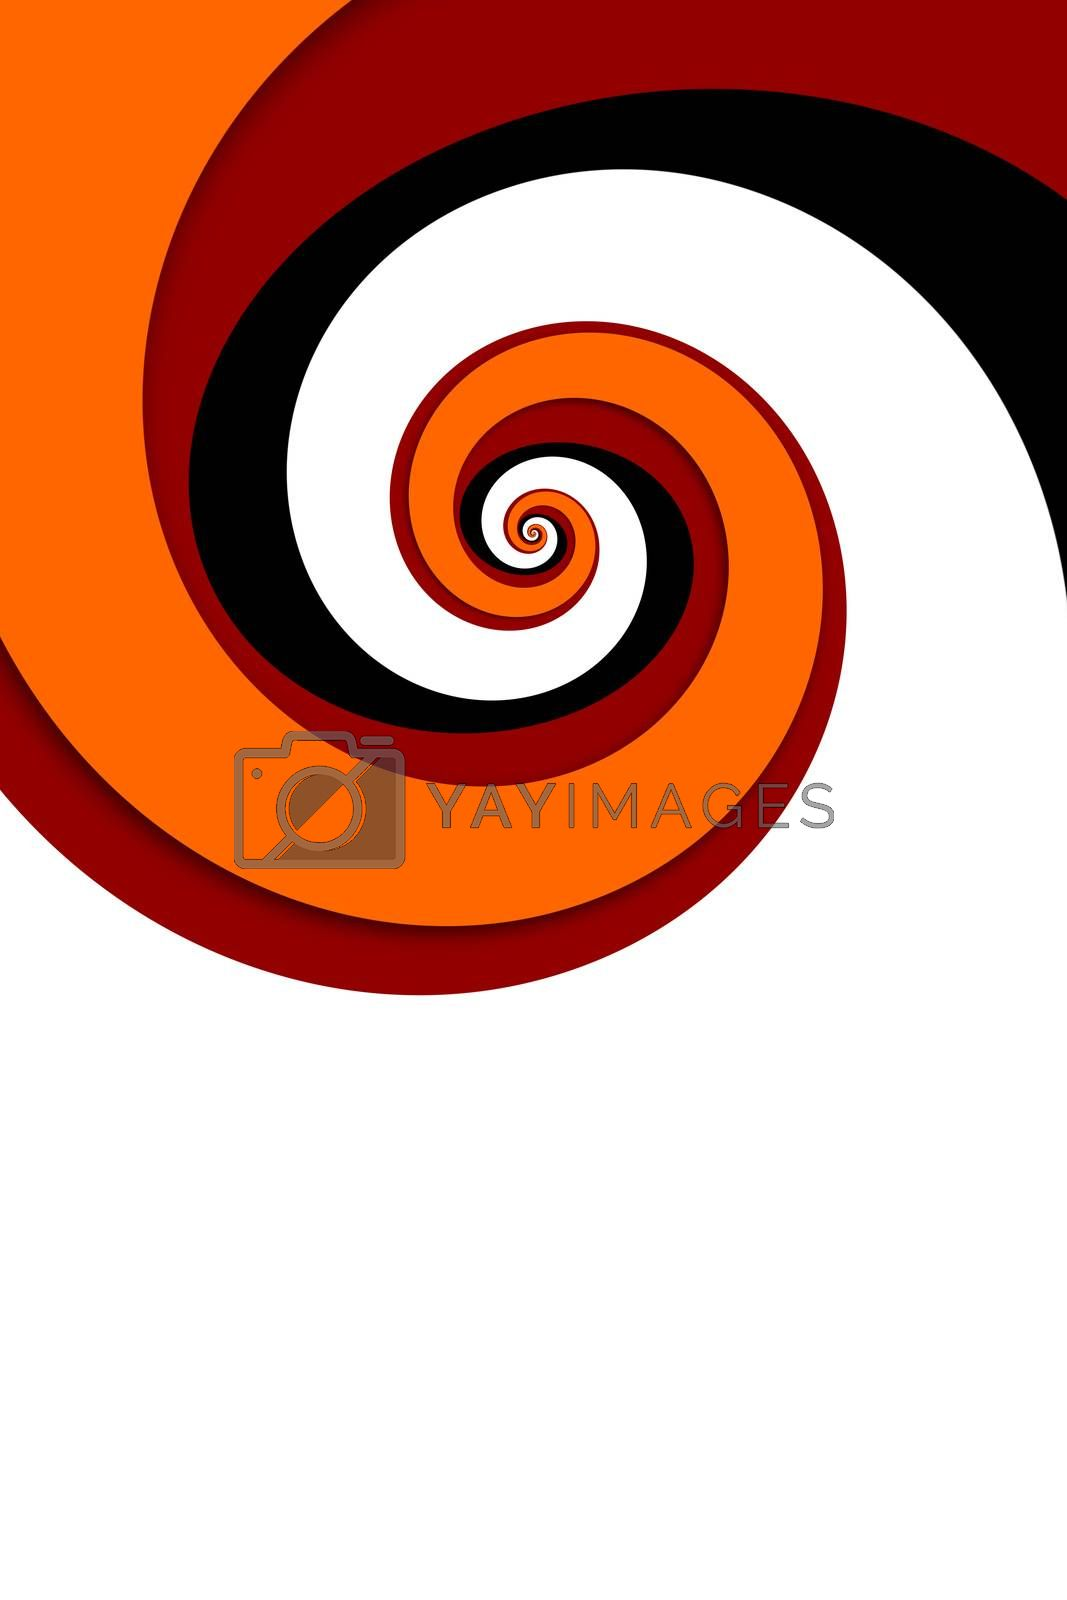 An illustration of a red spiral background